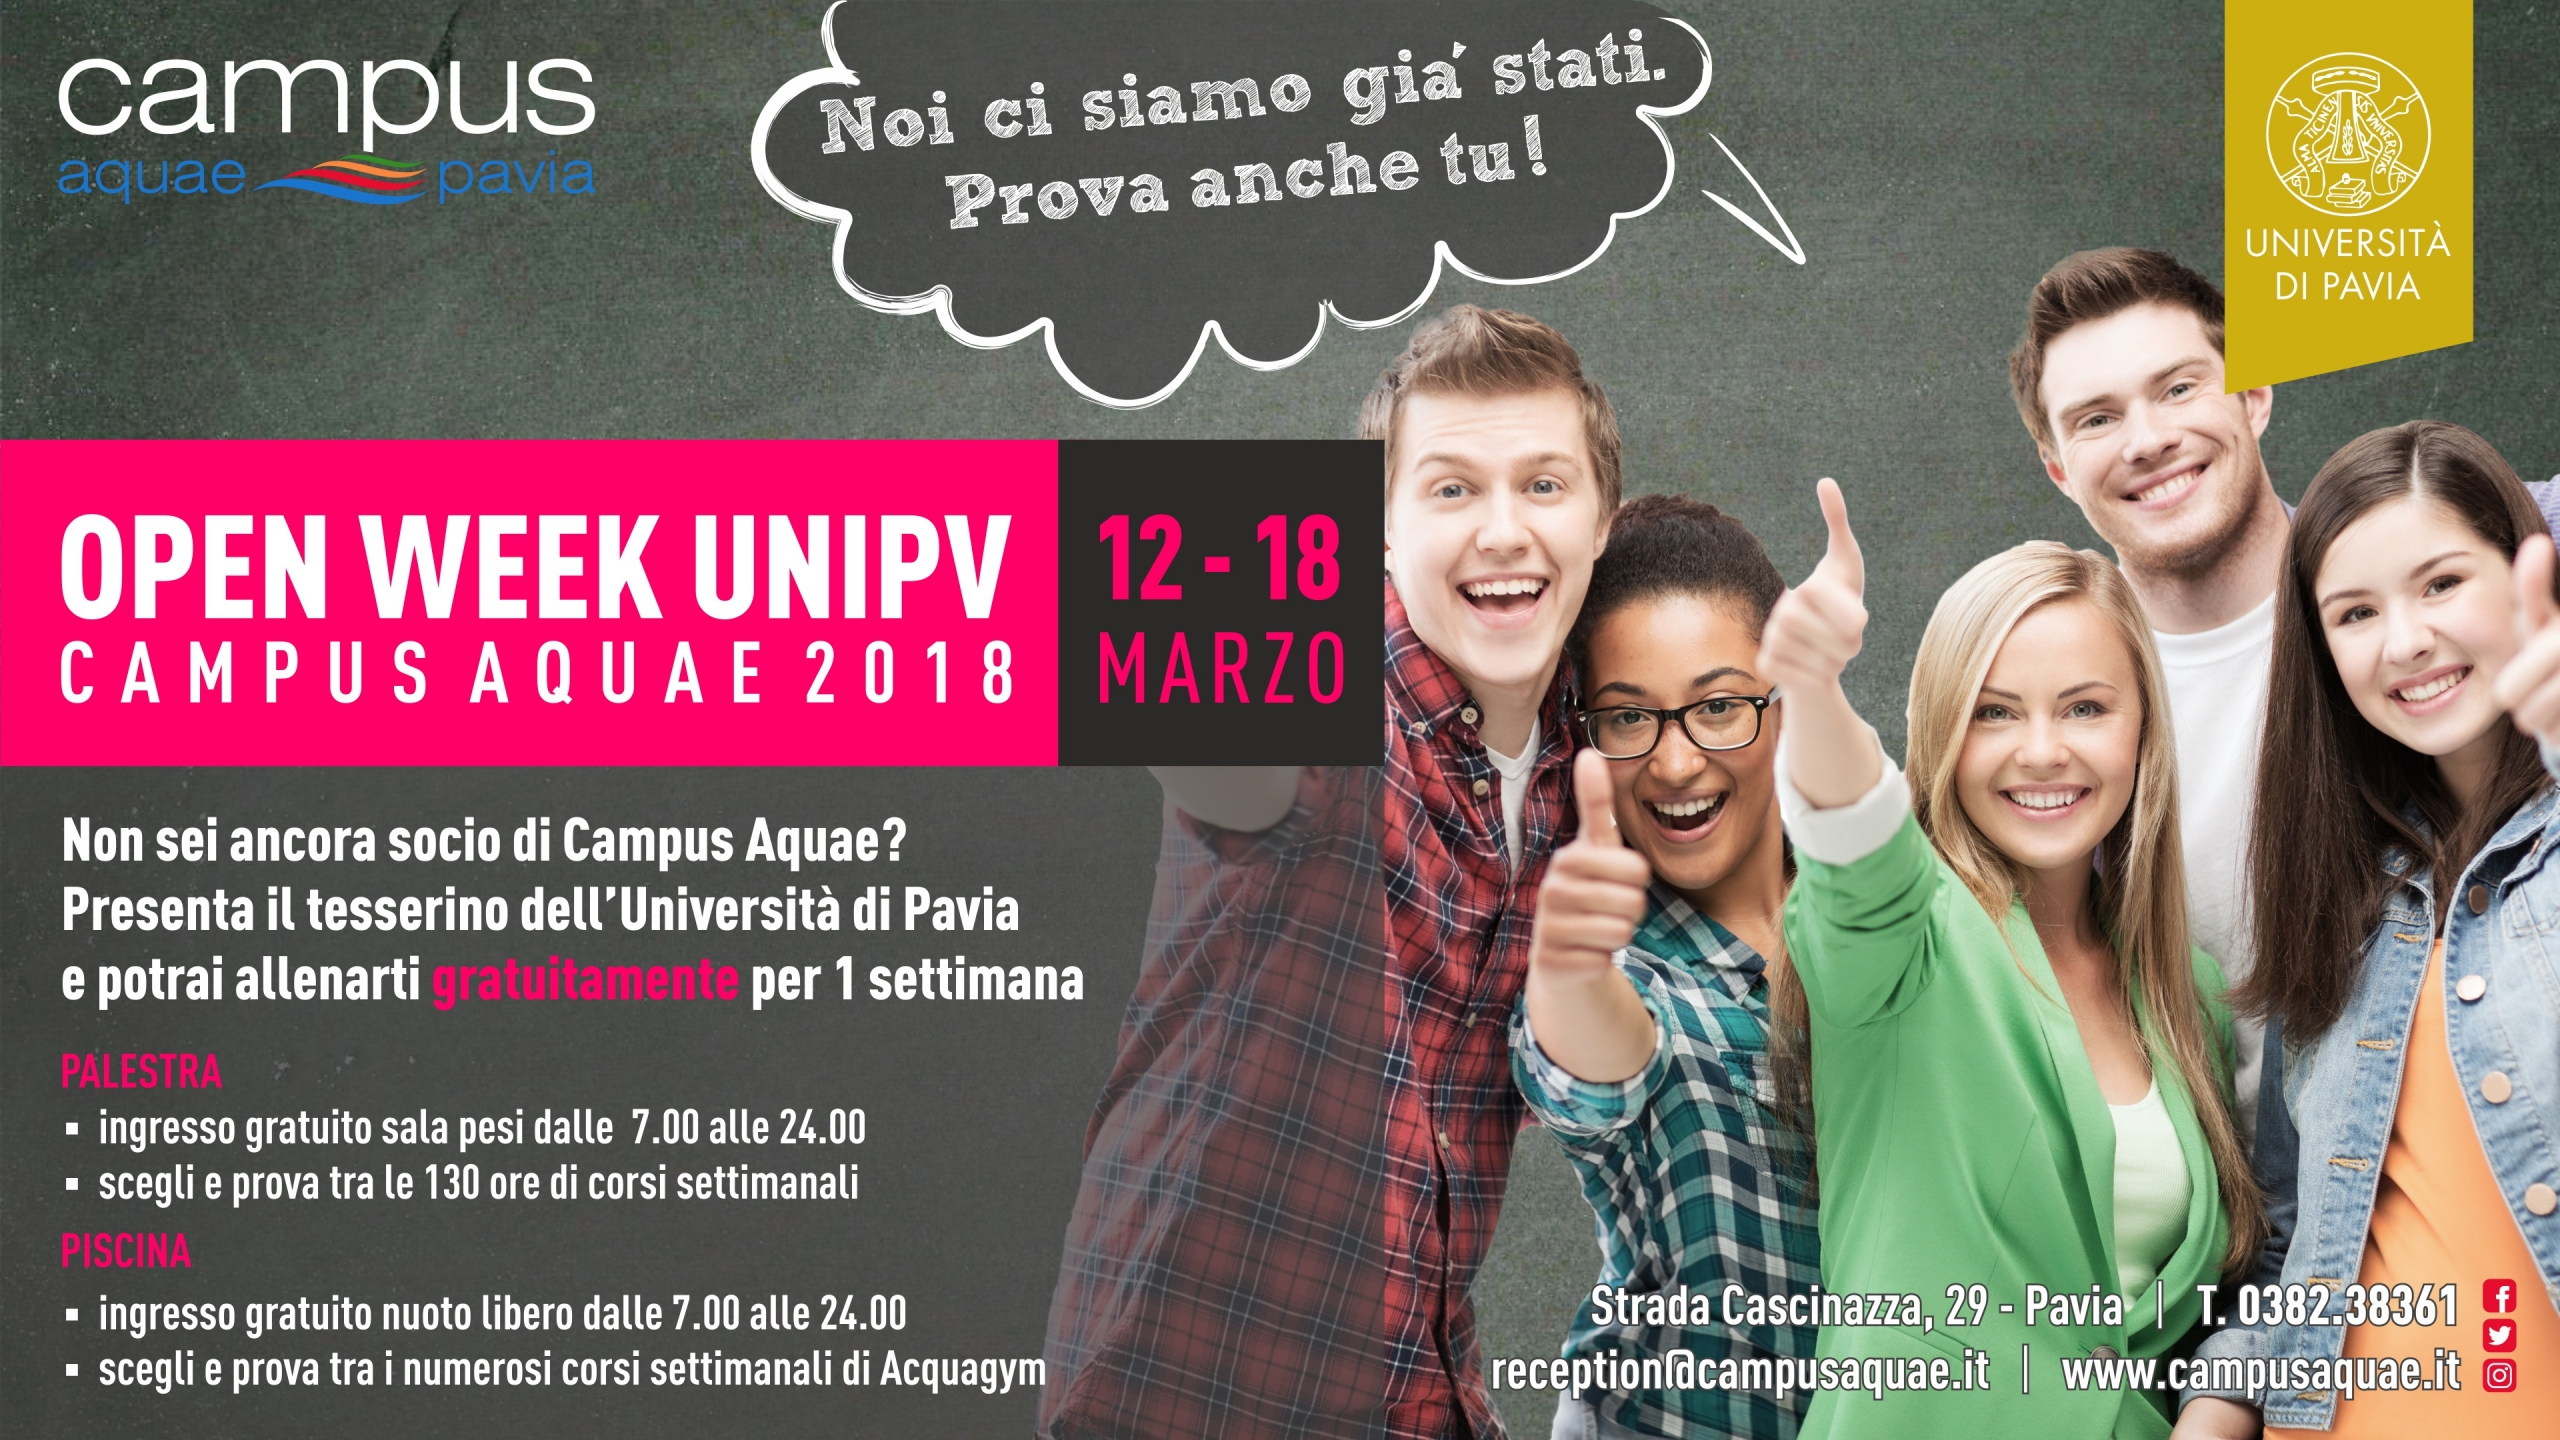 Open week UNIPV